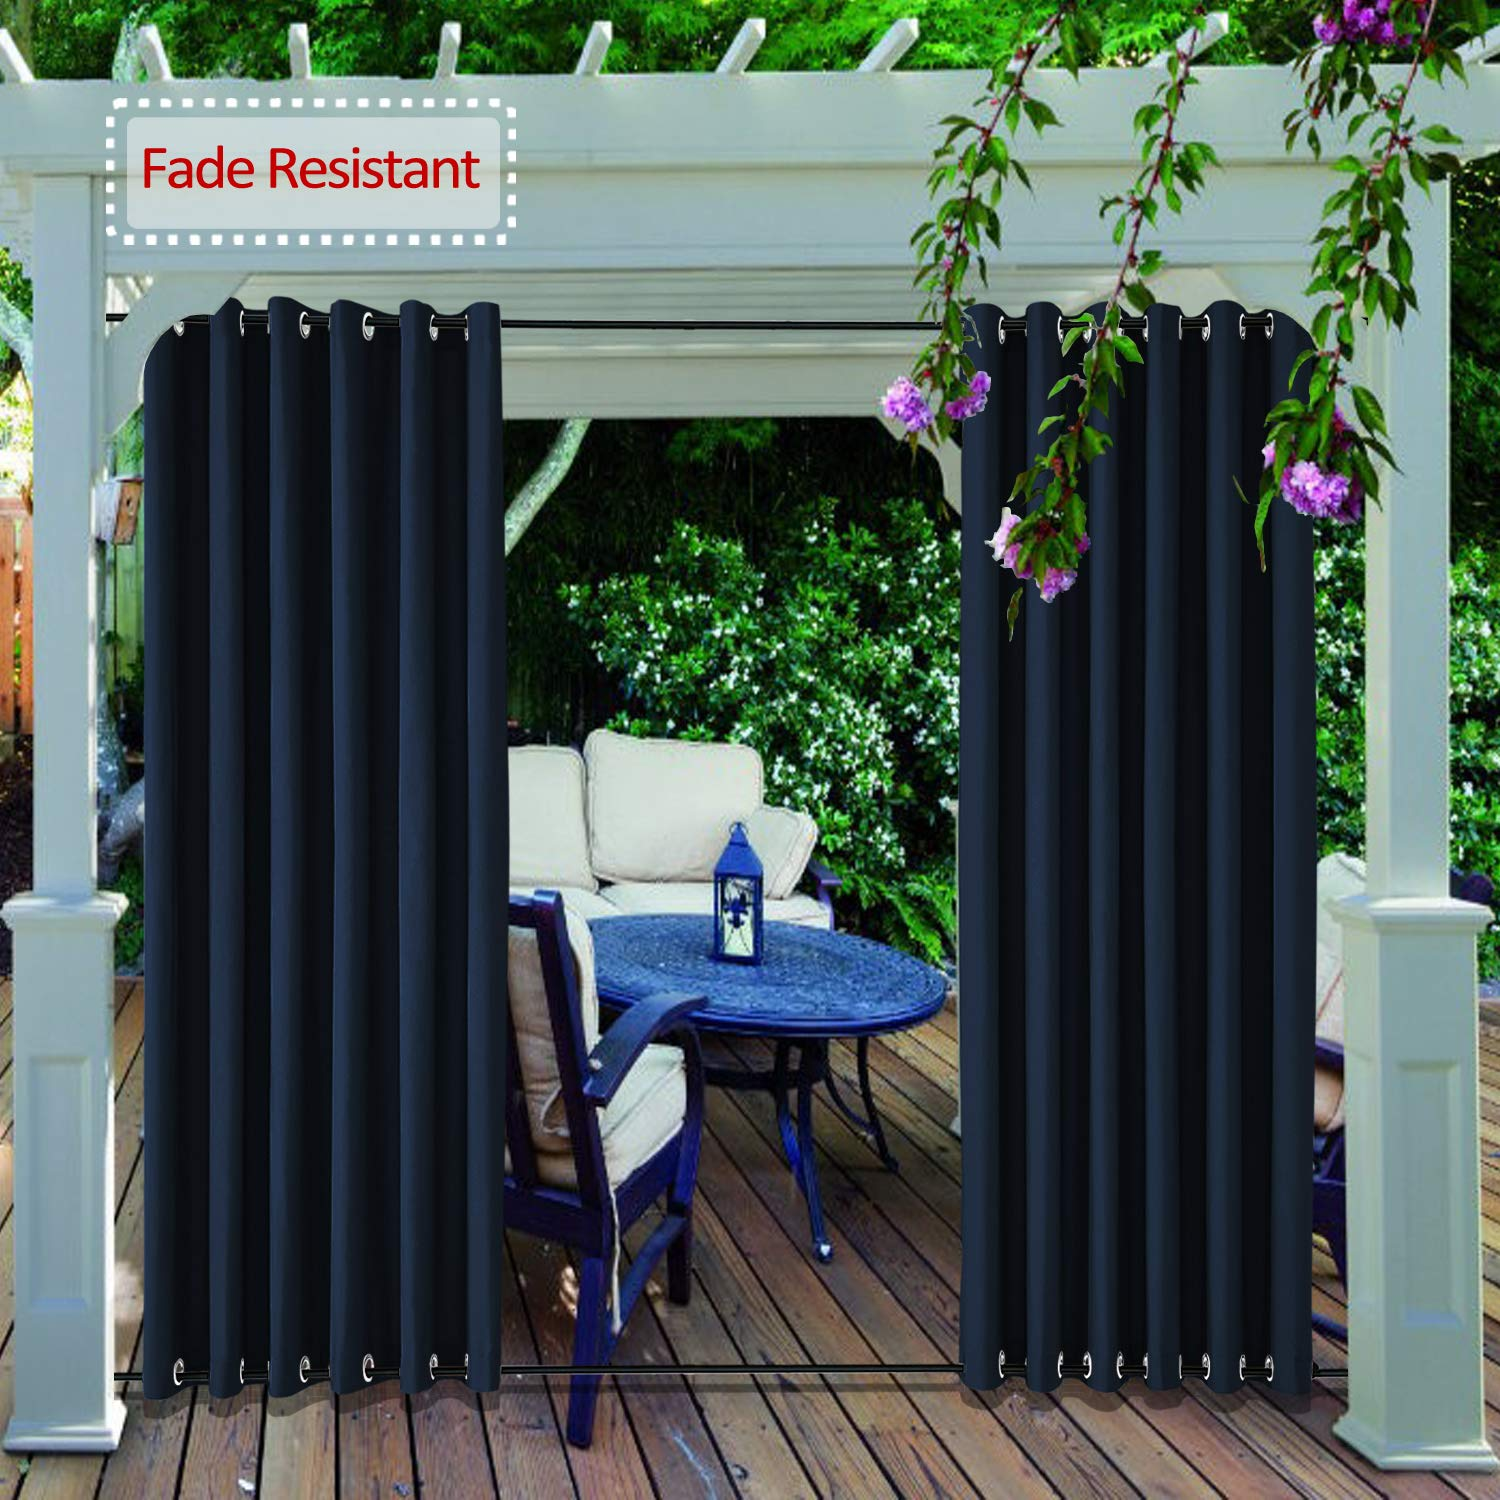 cololeaf Outdoor Curtain Panel for Patio - Grommet Top and Bottom Thermal Insulated Outdoor Drape Summer Heat Weather Resistant Thermal Insulated Pavilion Drapery, Navy 100W x 96L Inch (1 Panel)